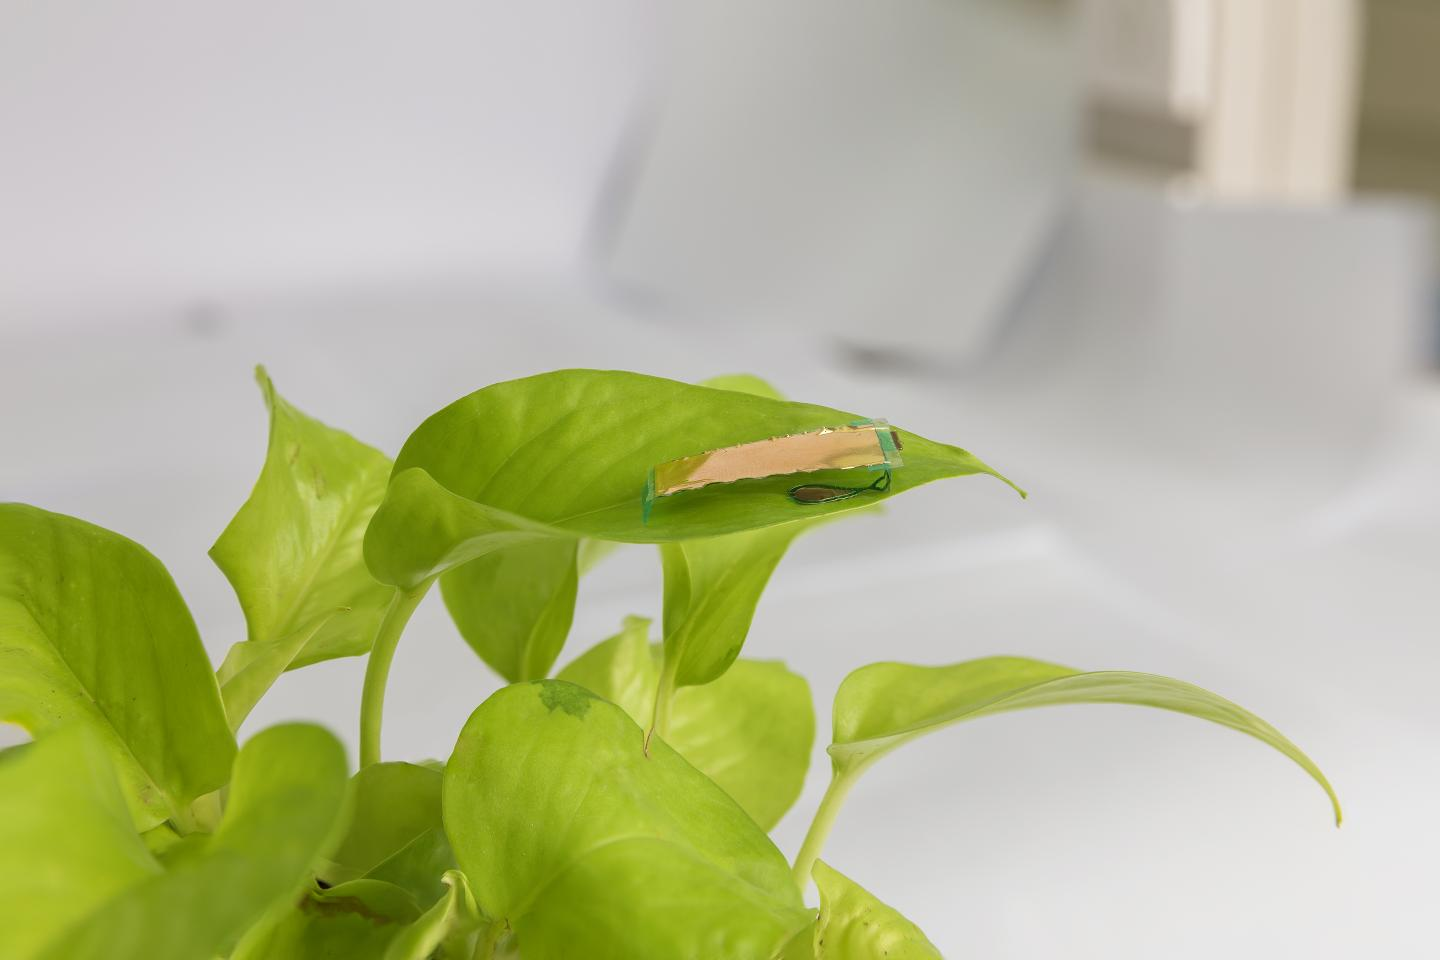 Insect-sized robot on a leaf